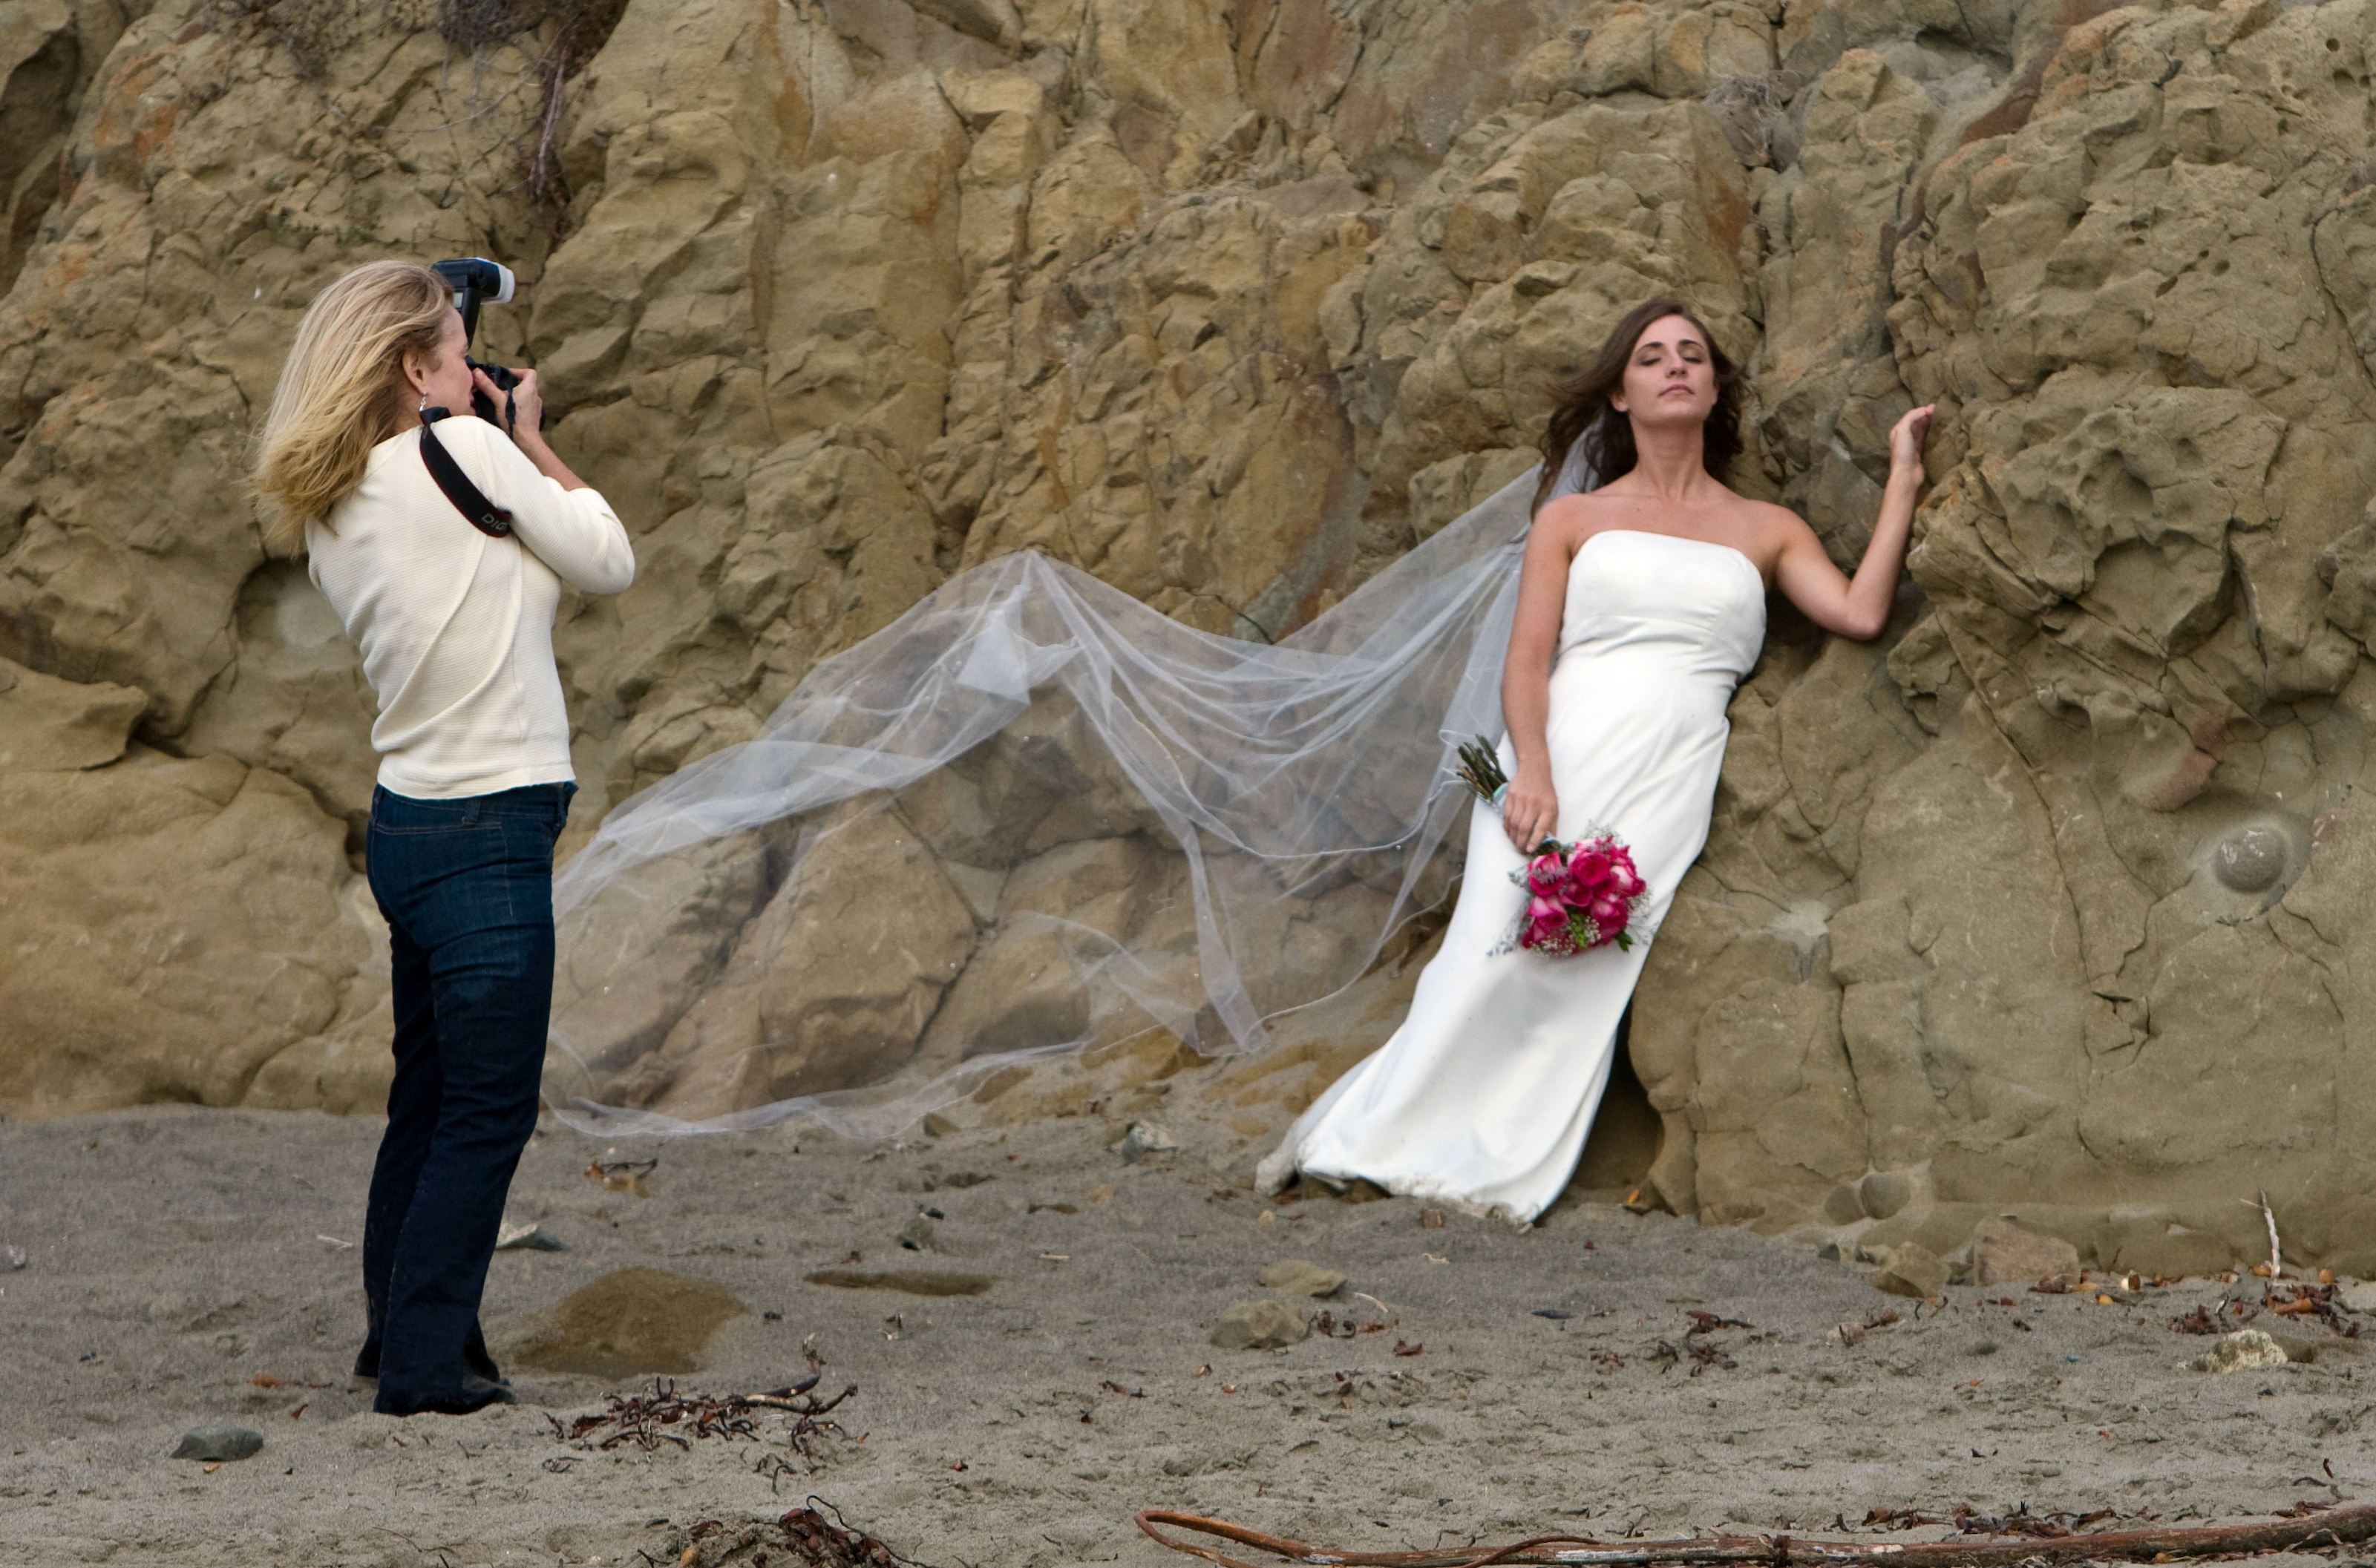 "1 of 4 Female photographer from Phoenix, Arizona, rehearses taking a critical wedding photo using her assistant here as a model, in later light on Morro Strand State Beach, Morro Bay, CA. 01 Nov. 2008. Michael ""Mike"" L. Baird, Canon 1D Mark III, 70-200mm f/2.8 IS handheld."